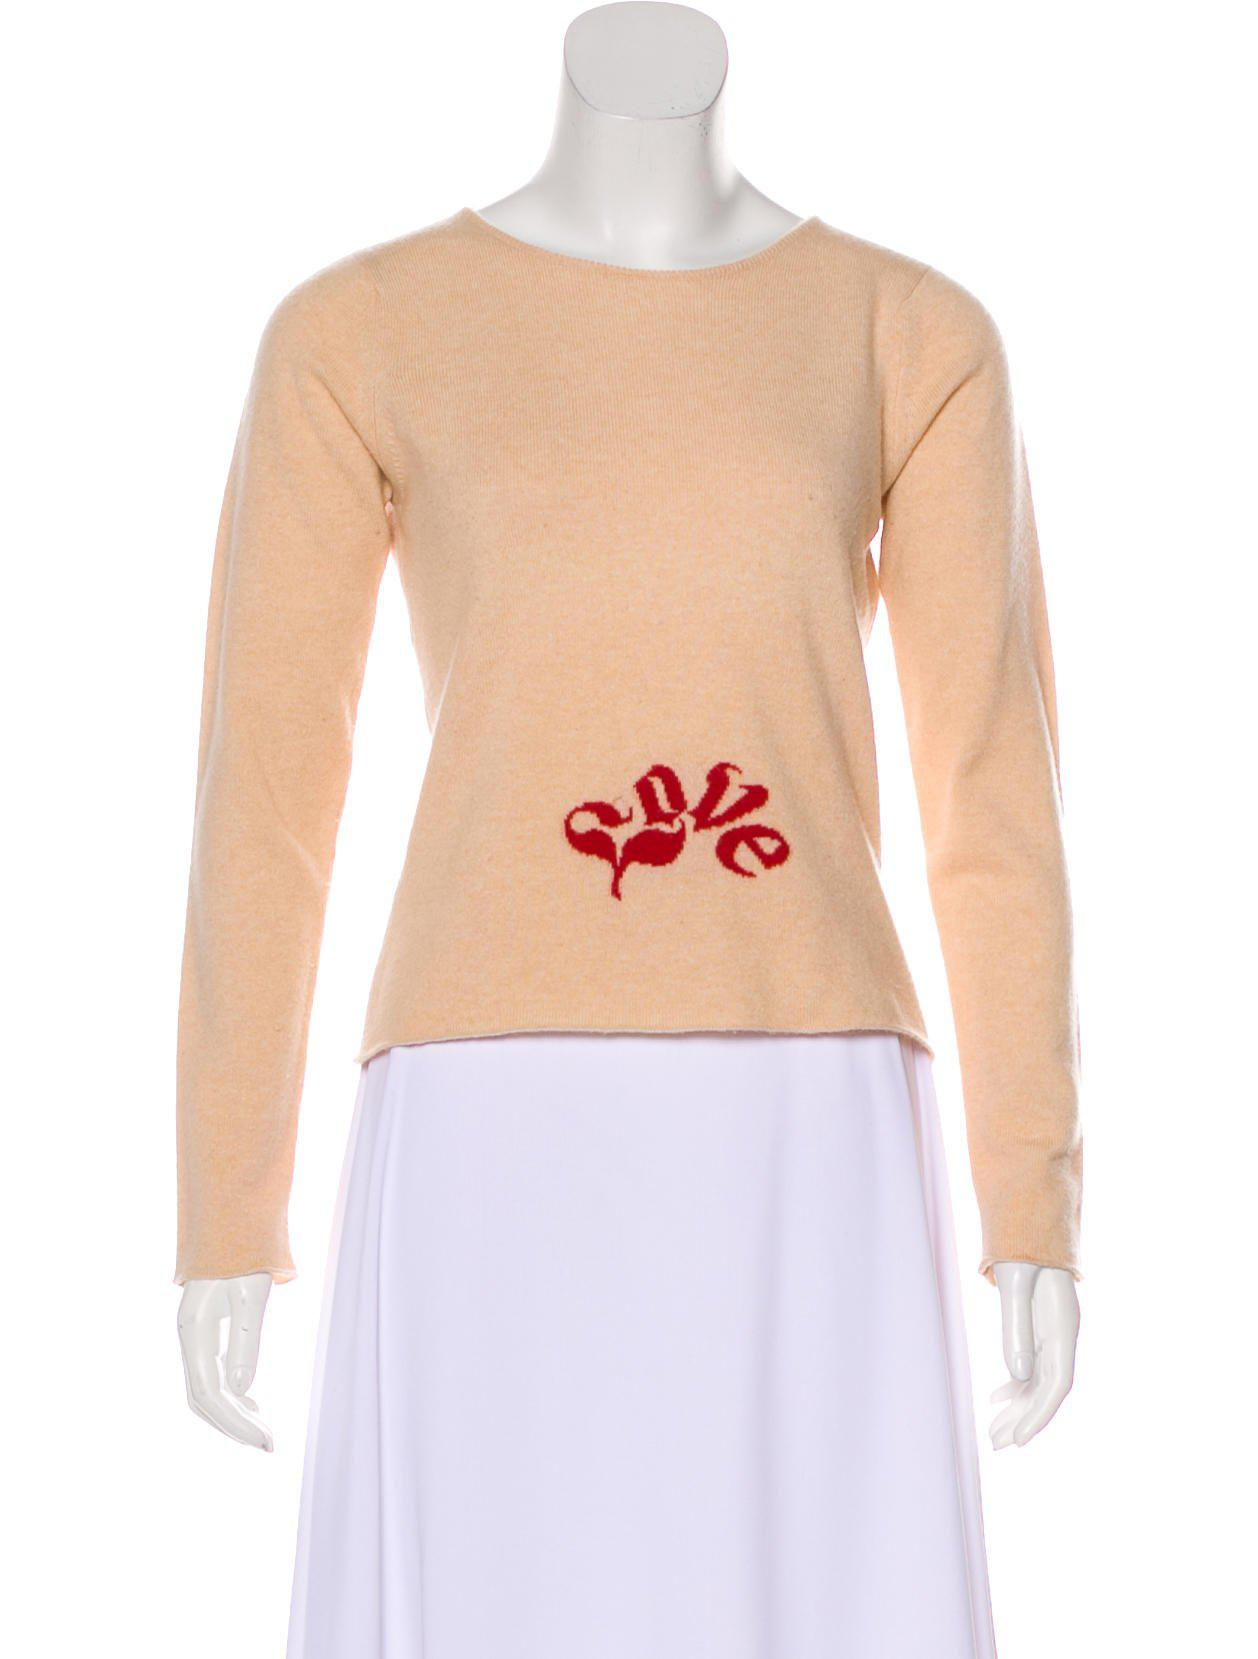 How Much Cheap Online Lucien Pellat-Finet Long Sleeve Cashmere Top From China Online iMuhKhwPQF